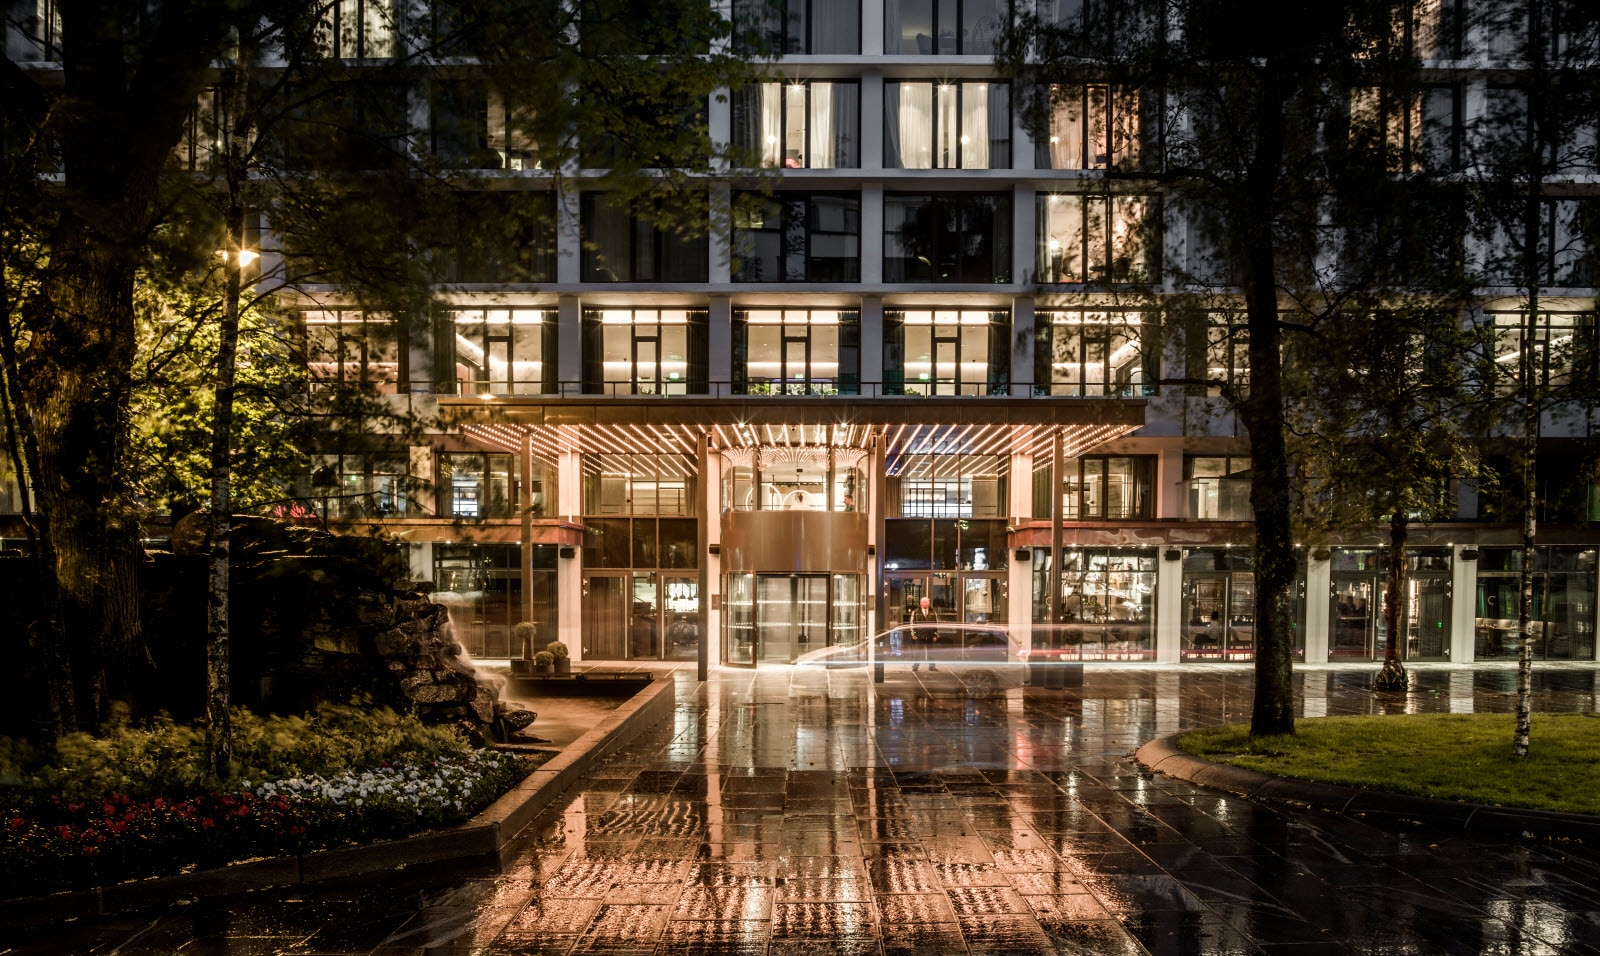 Entrance_by_night_Hotel_Norge_by_Scandic_Copyright.jpg